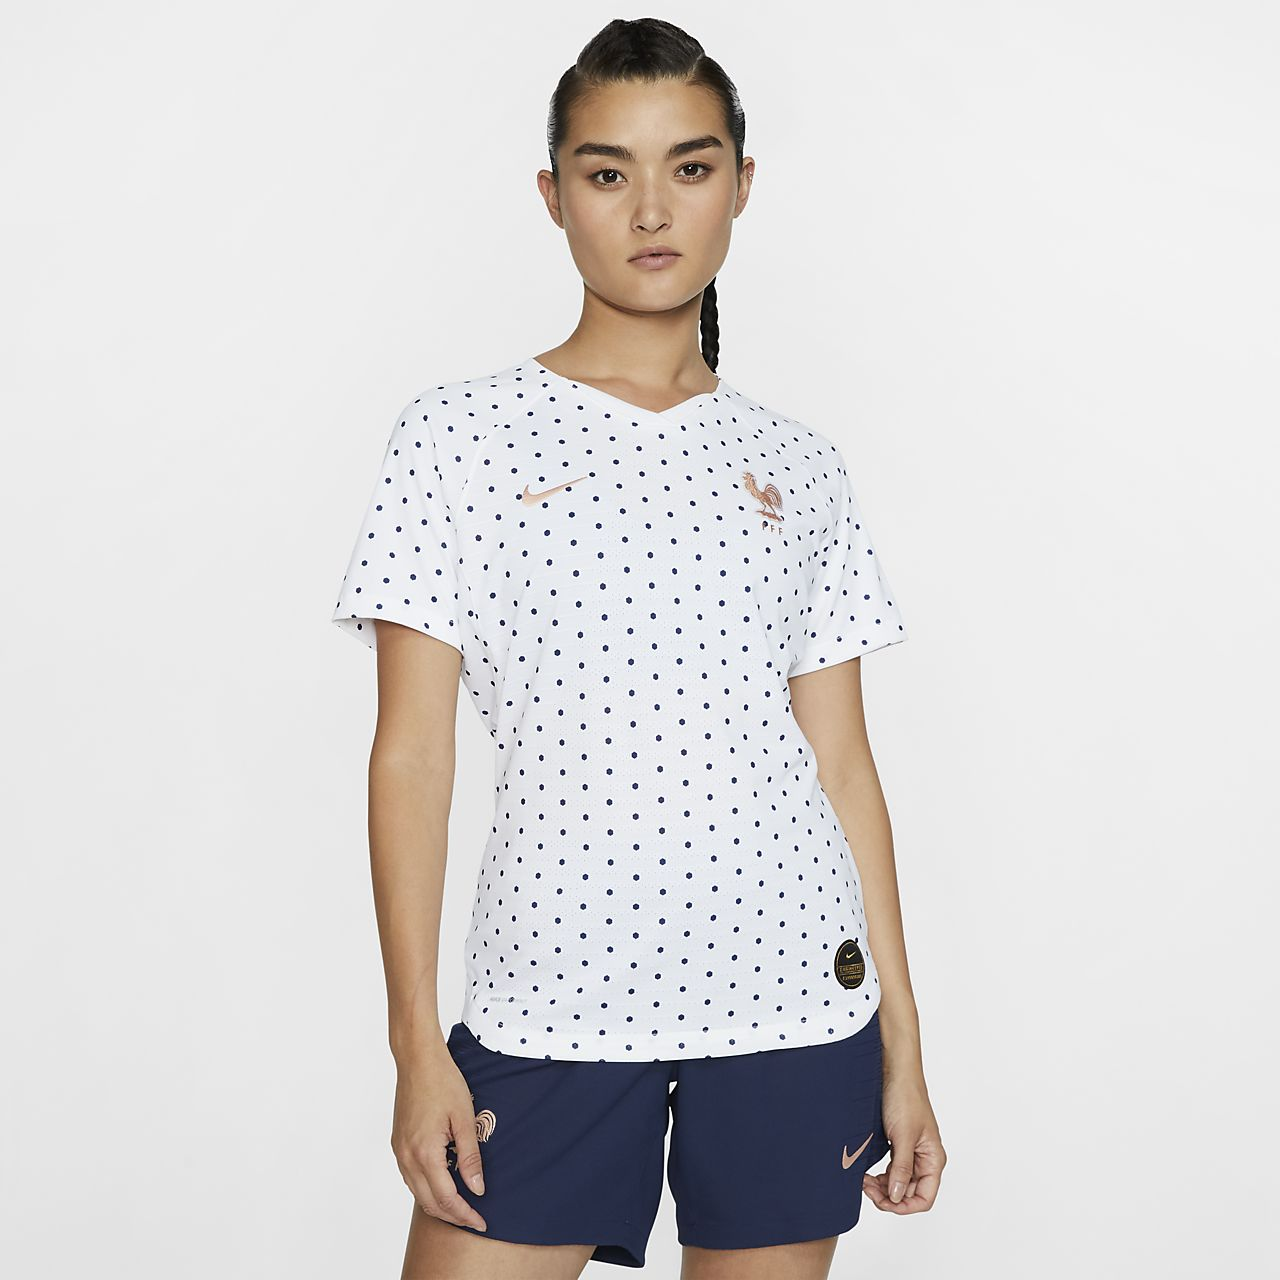 FFF 2019 Vapor Match Away Women's Football Shirt